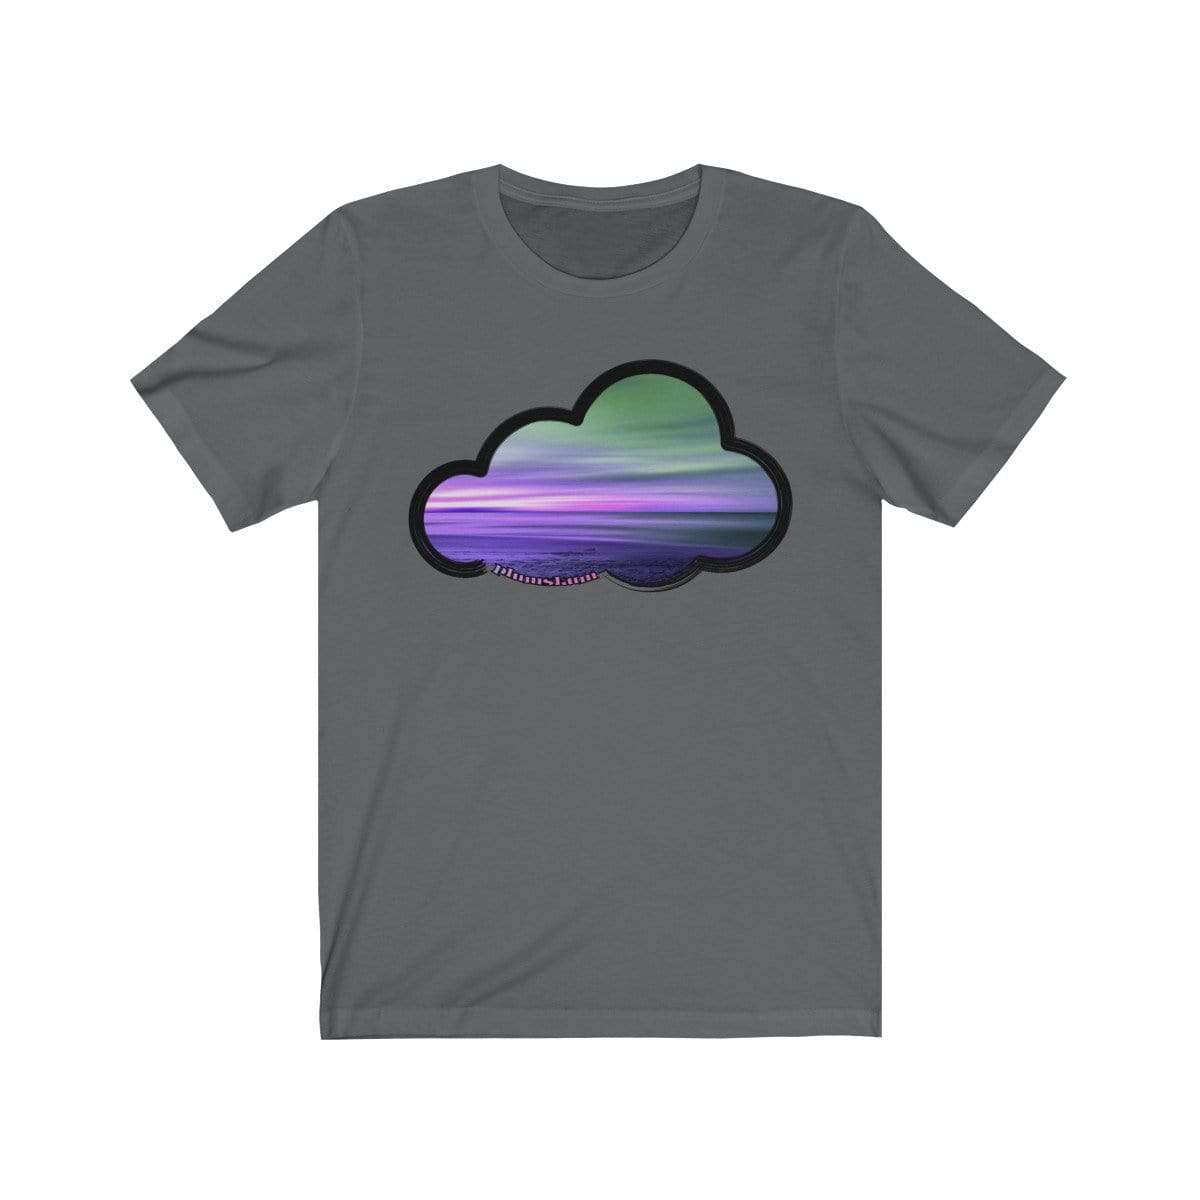 Printify T-Shirt Asphalt / M Beaches Art Clouds Tee